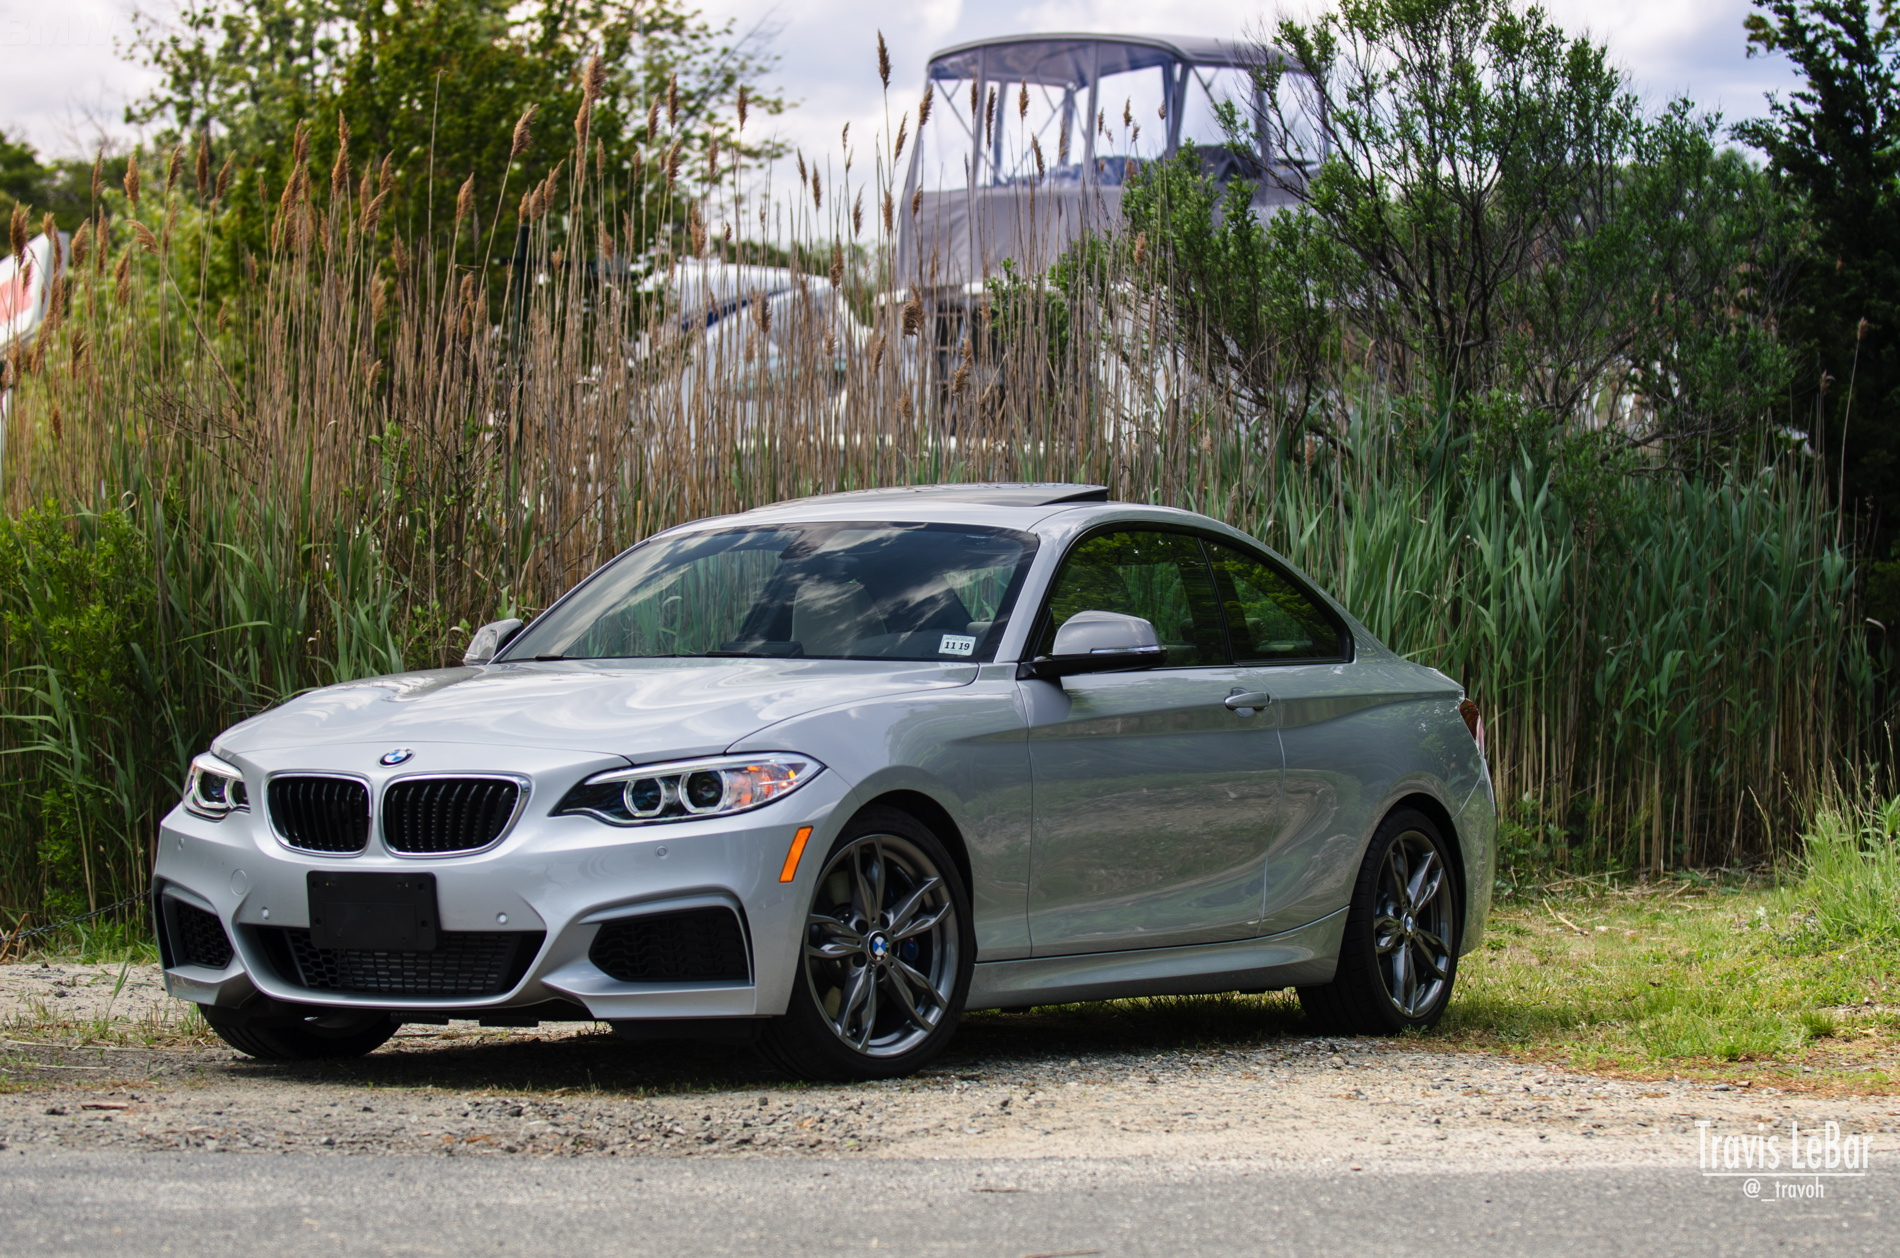 2015 Bmw M235i Xdrive Test Drive 1900x1200 08 750x497